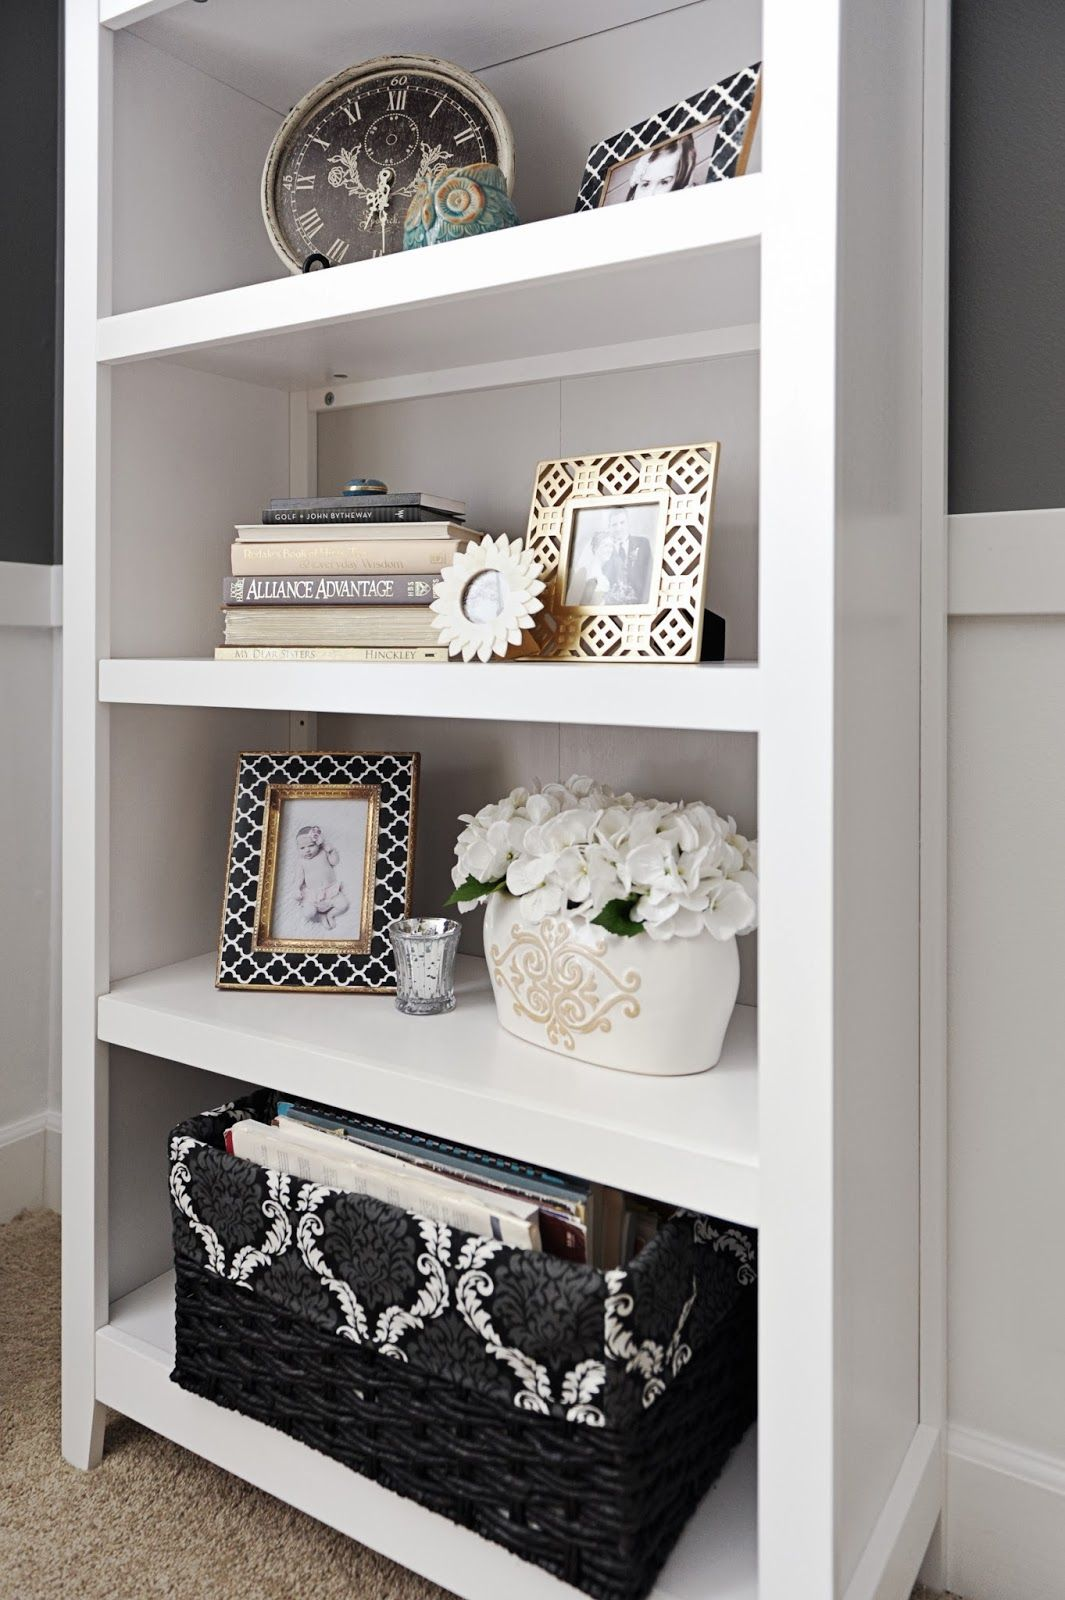 Studio 7 Interior Design: How To Stage A Bookcase